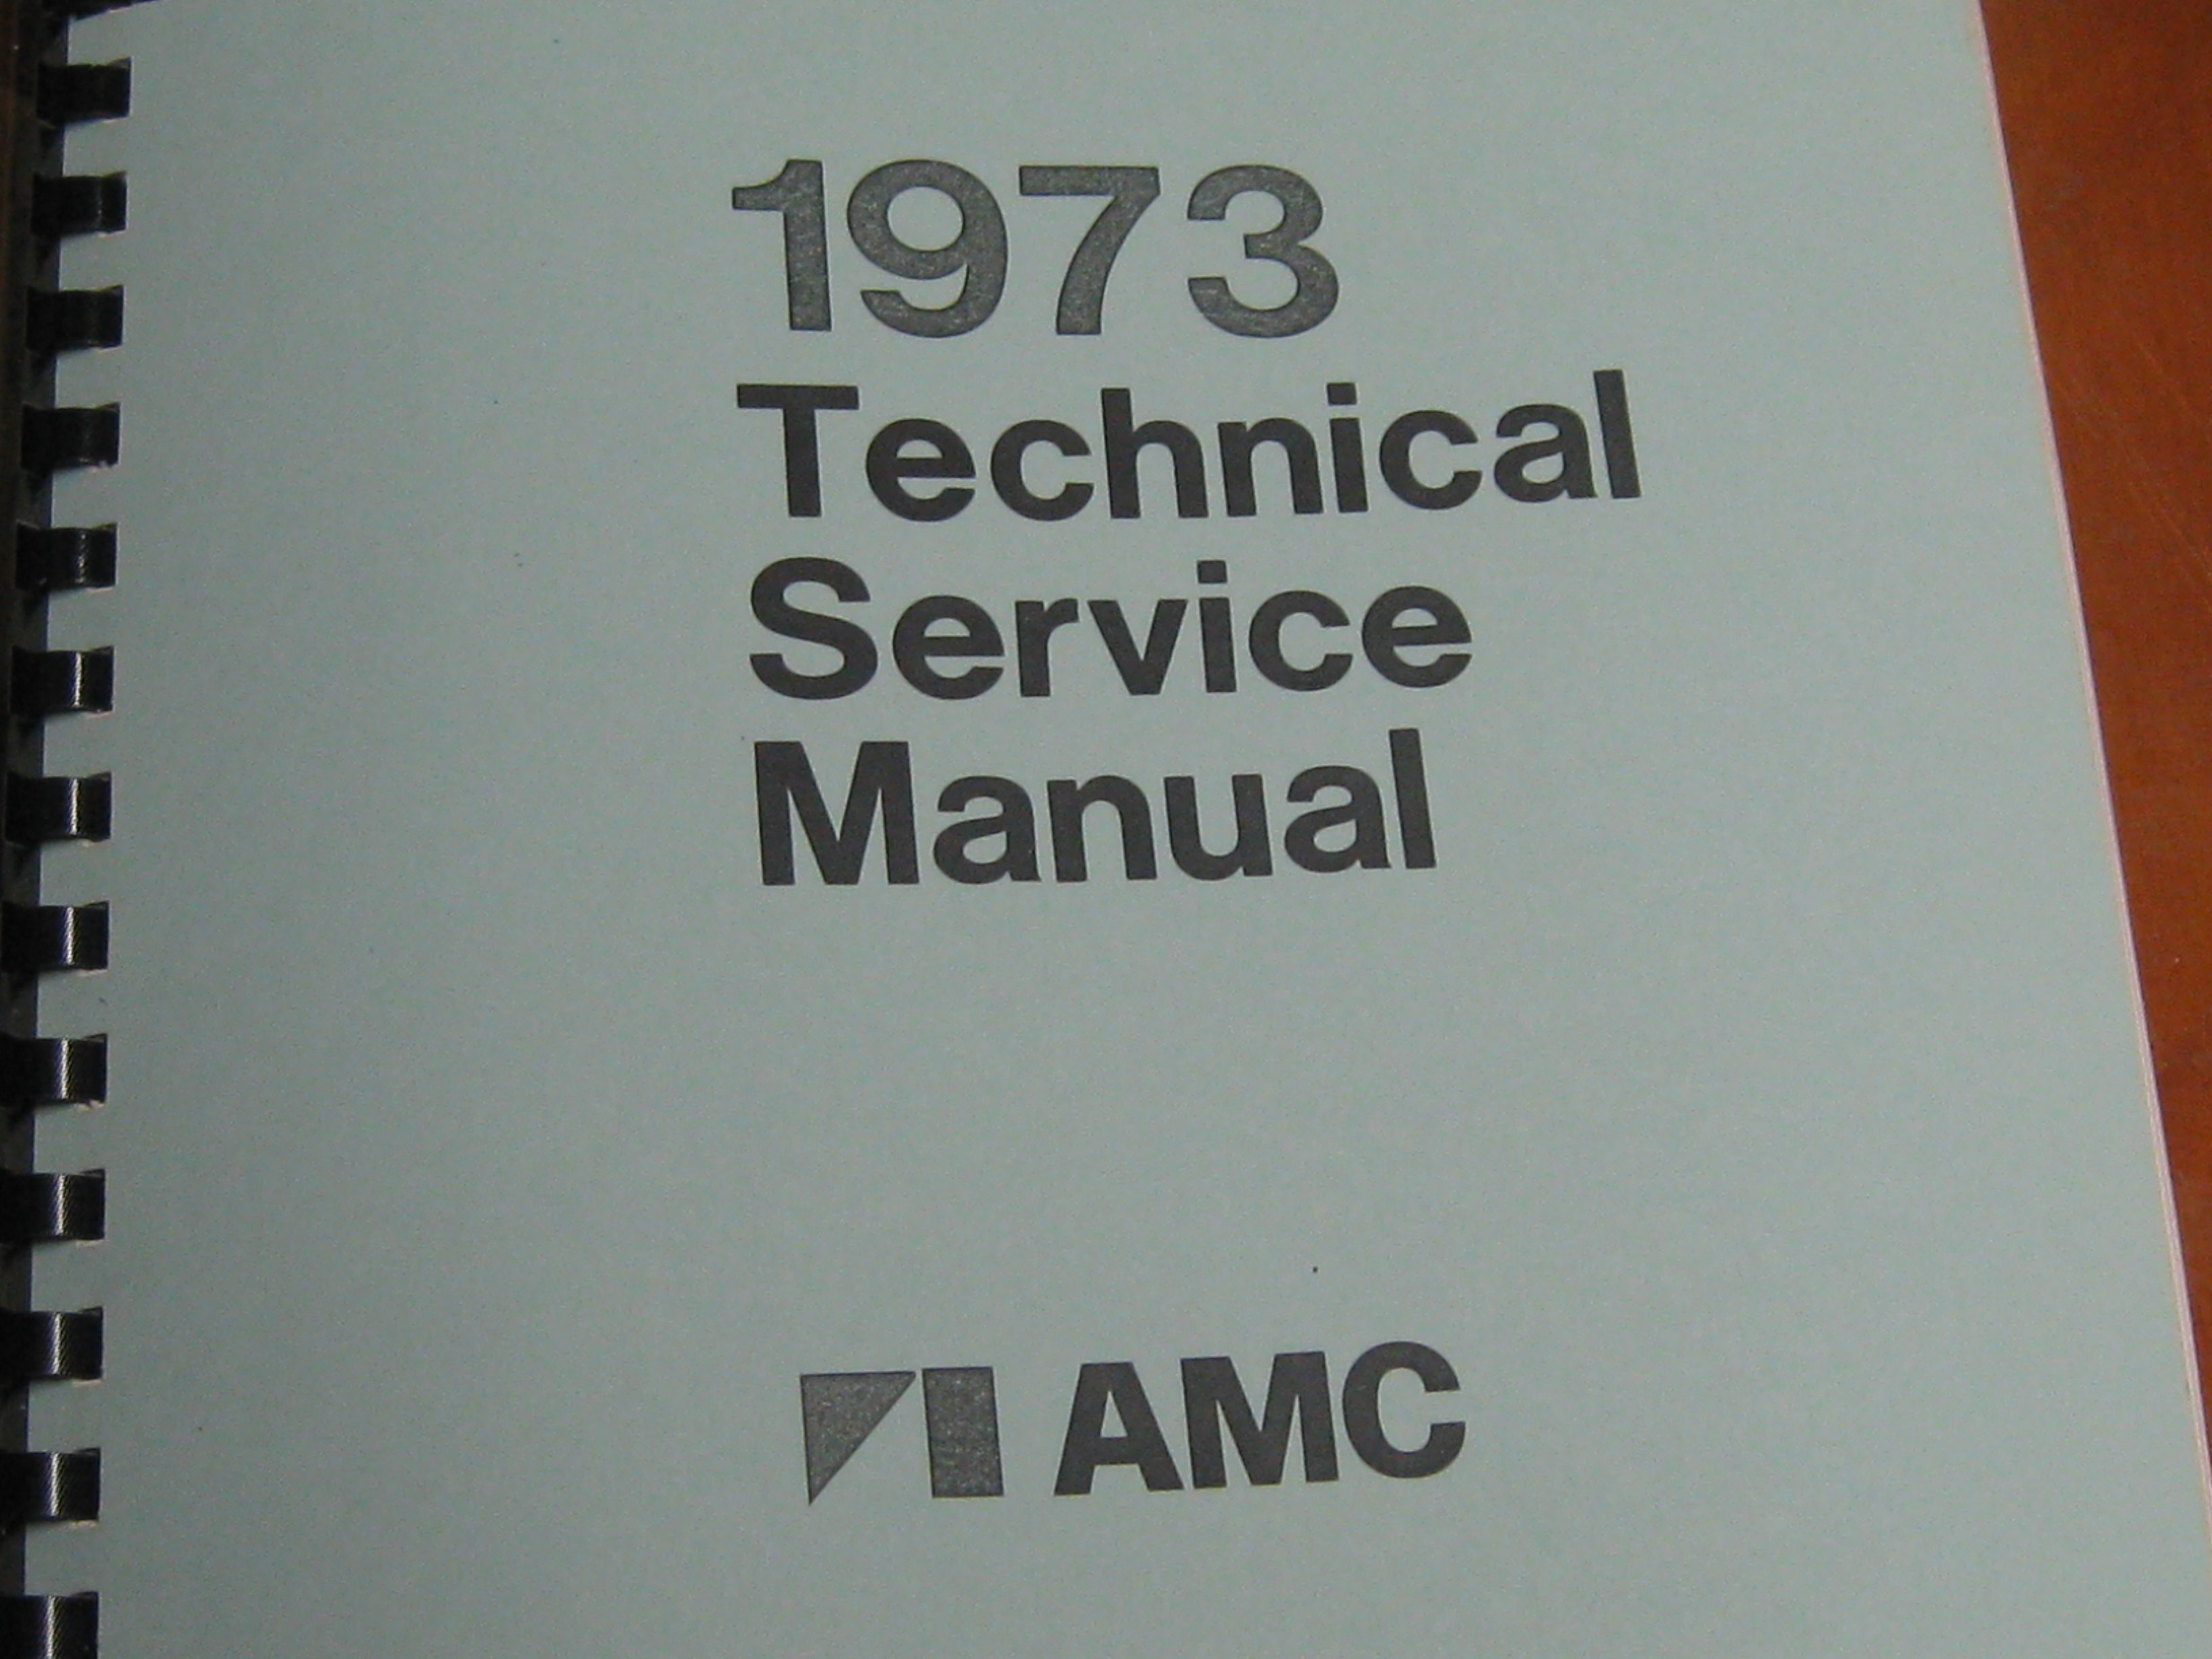 $35.00 Tax may apply. 12 in stock. Quantity. Add to cart. SKU: 1973 AMC  Technical Service Manual